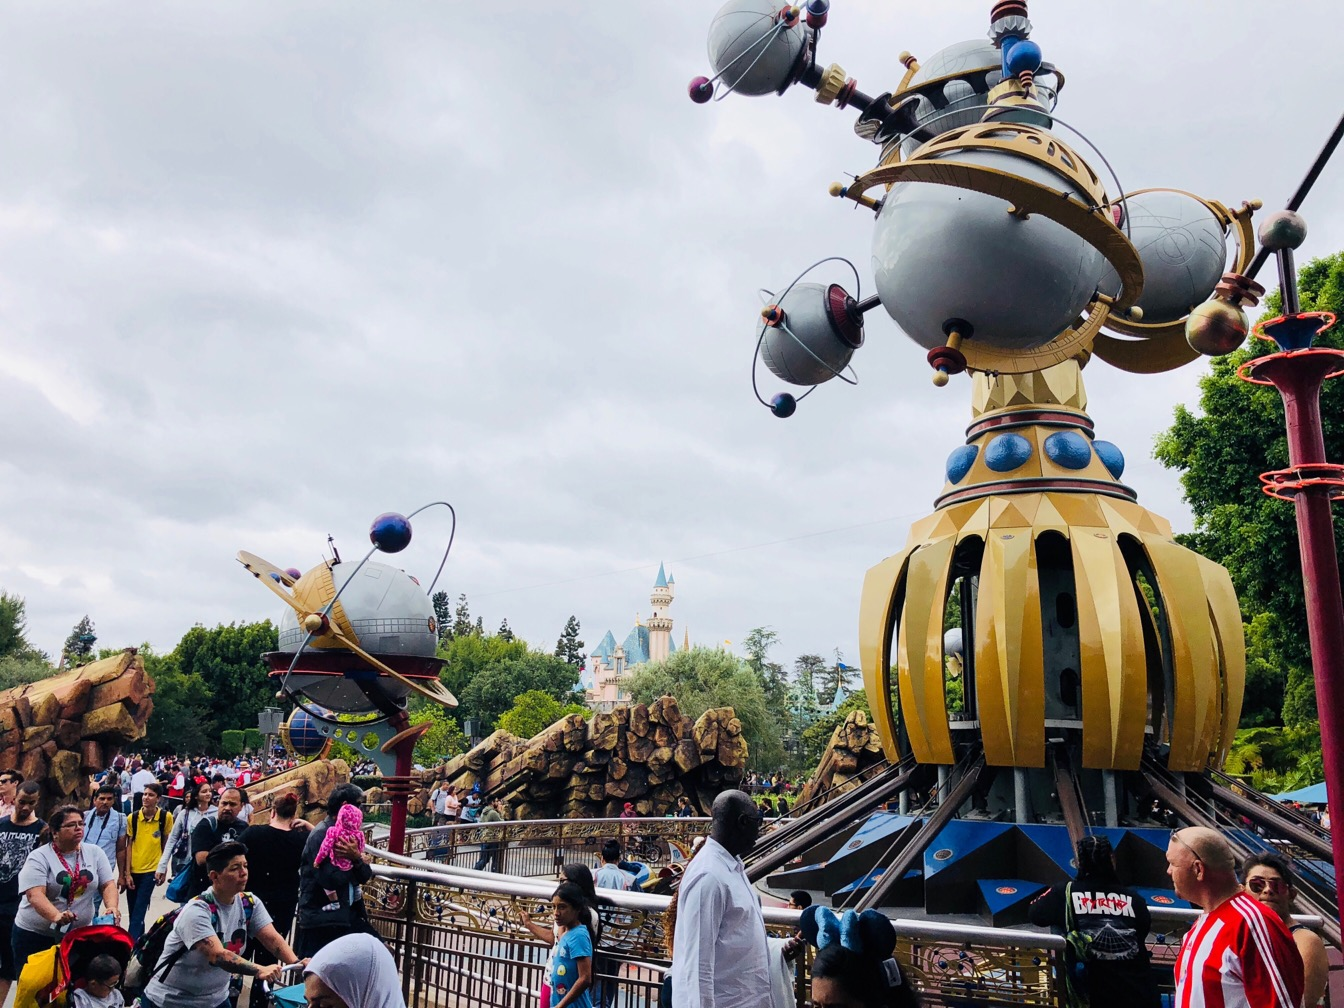 Photo of the Disney castle, taken with space age ride in the foreground.